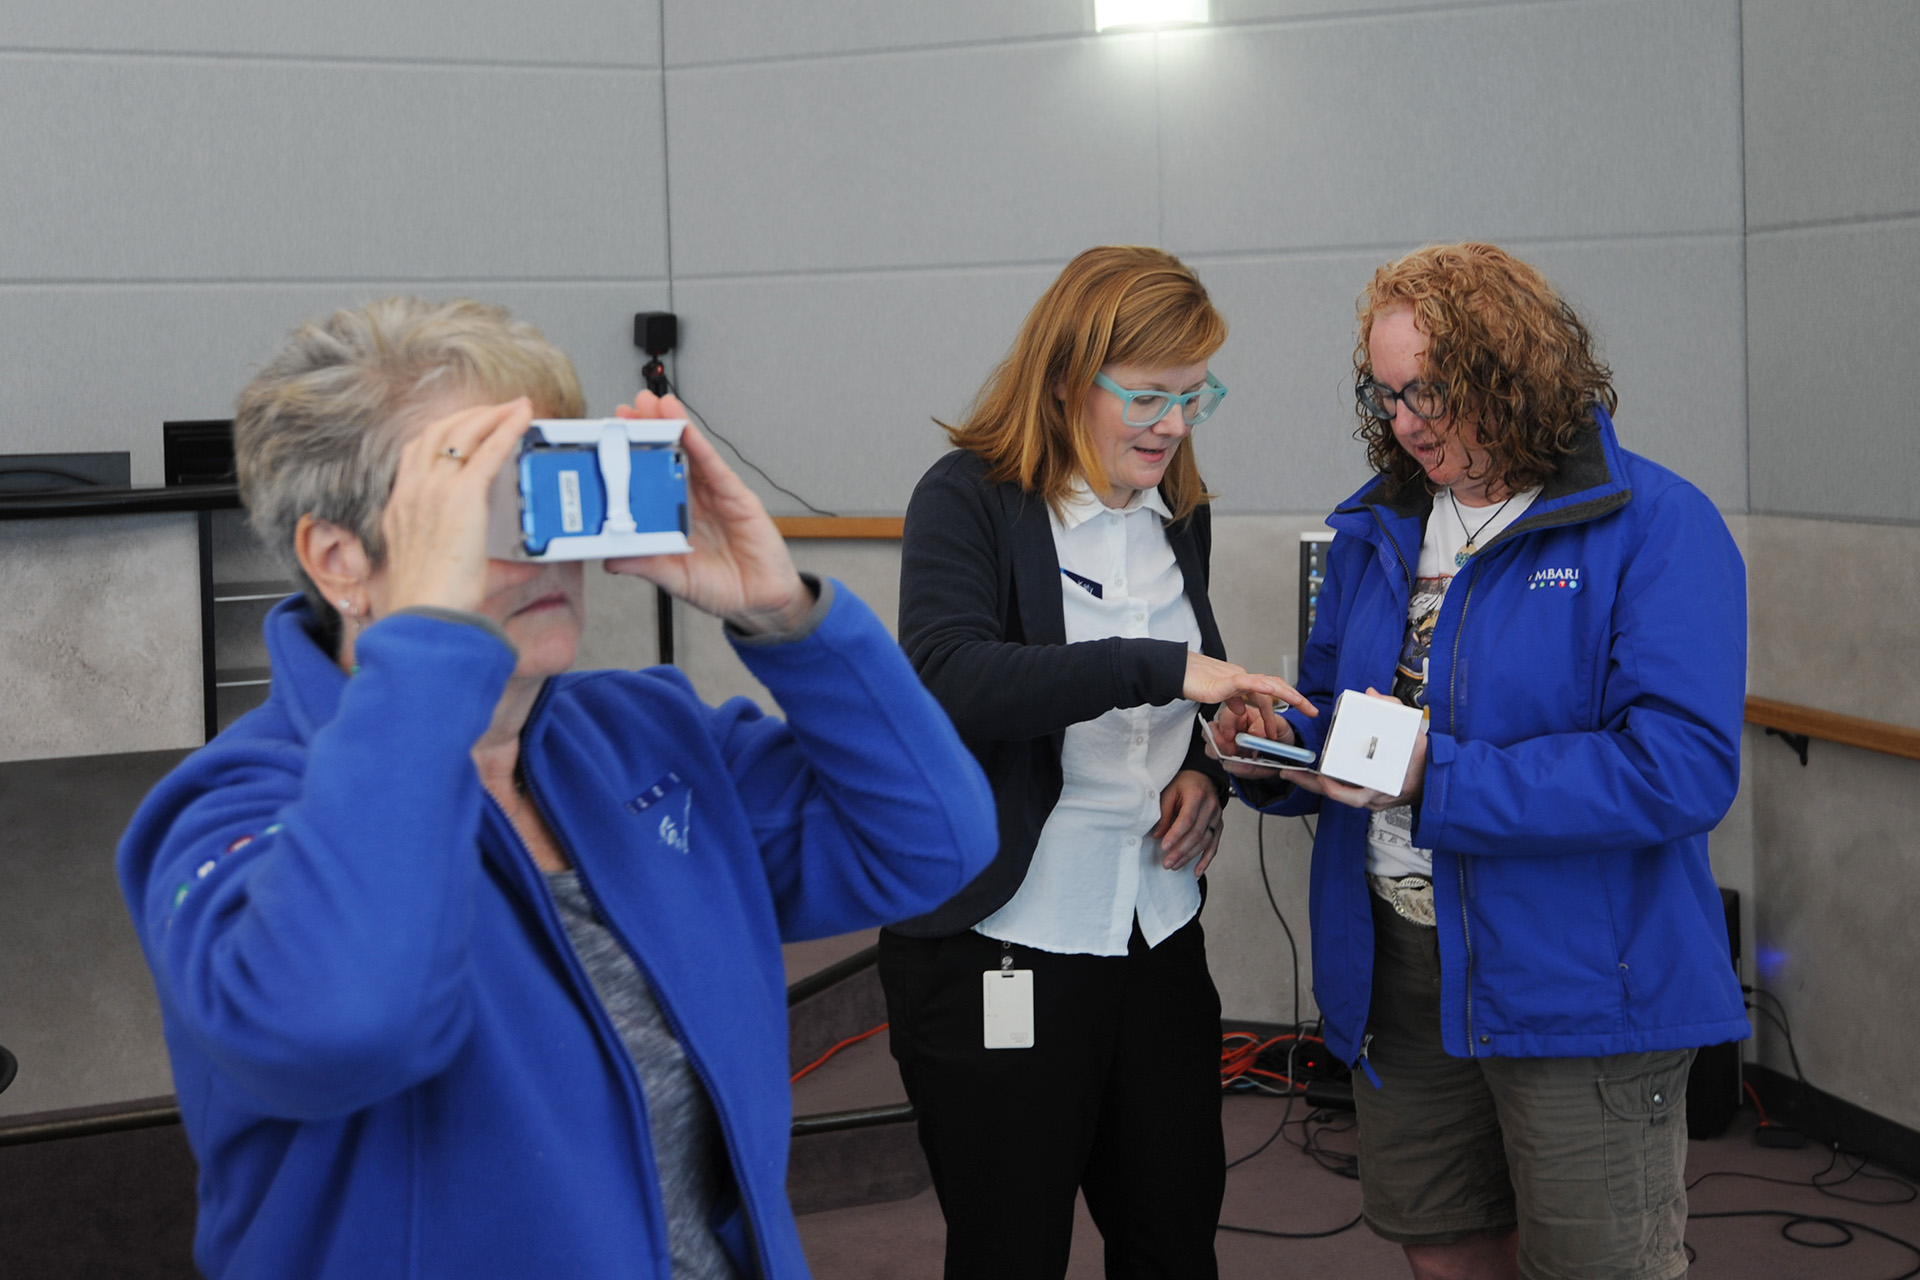 Katy Scott demonstrates using Cardboard viewers to see 360° images